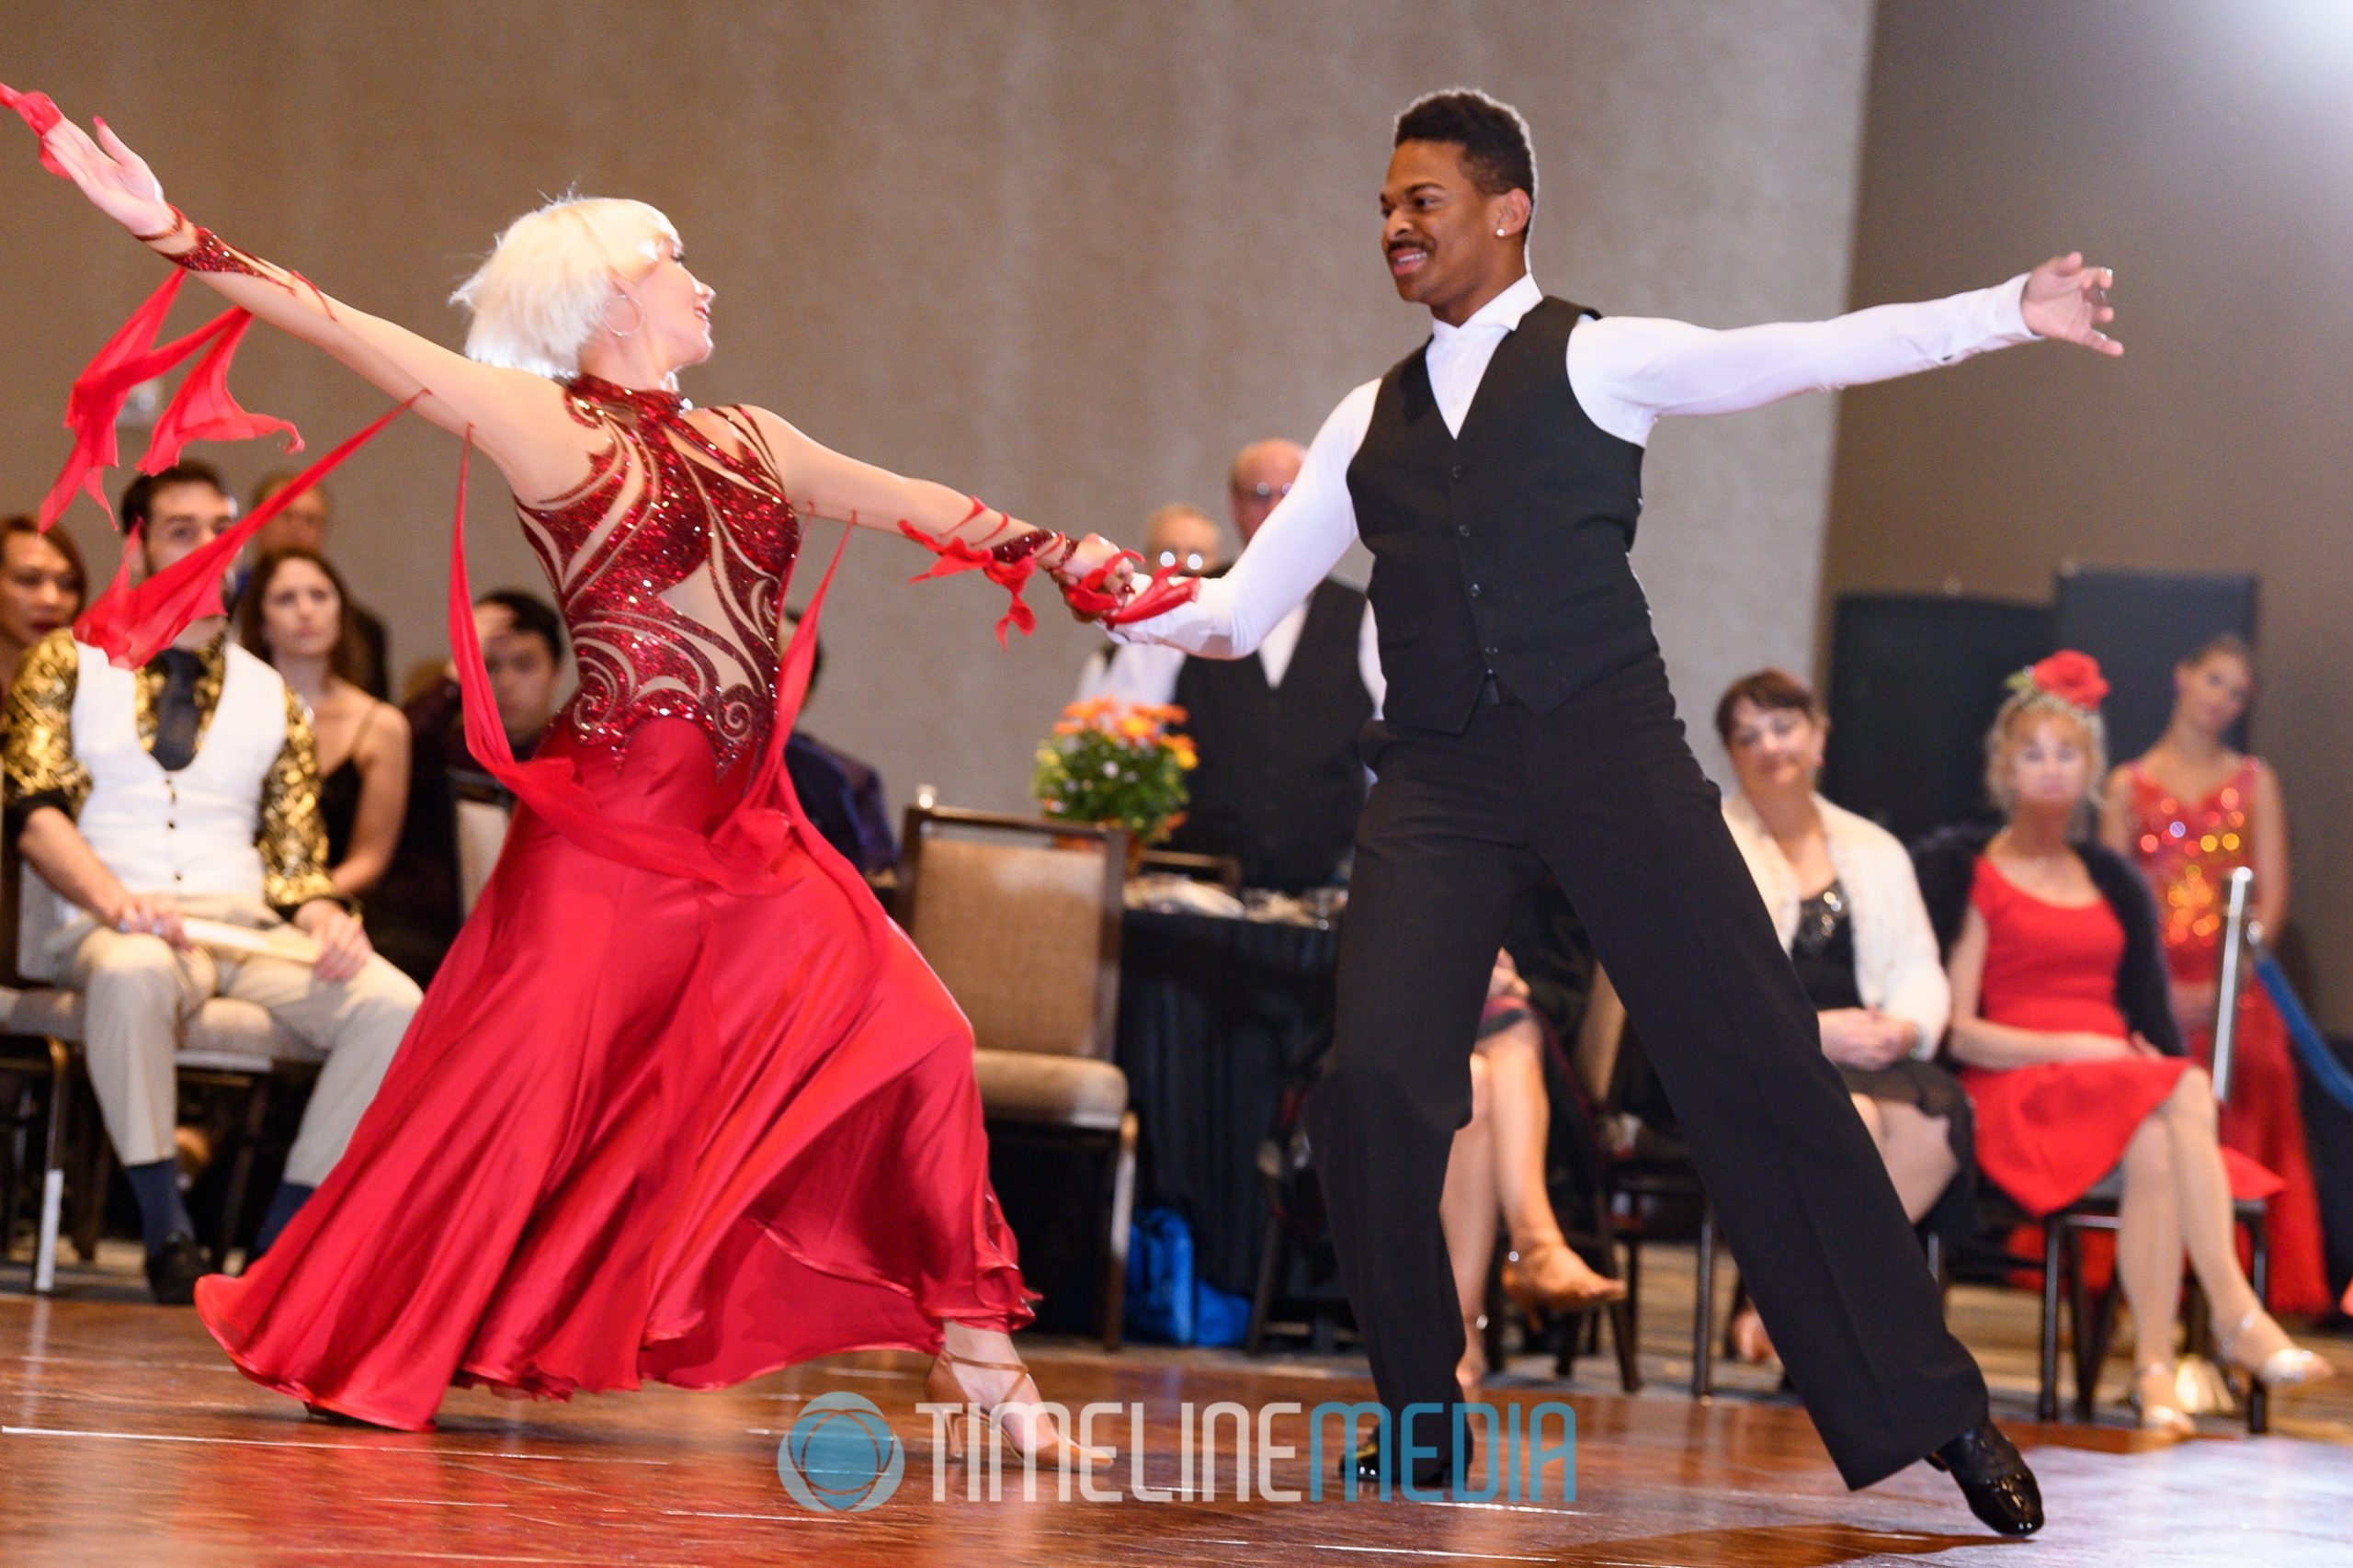 2019 Fall Showcase professional show by the Columiba, Maryland studio ©TimeLine Media